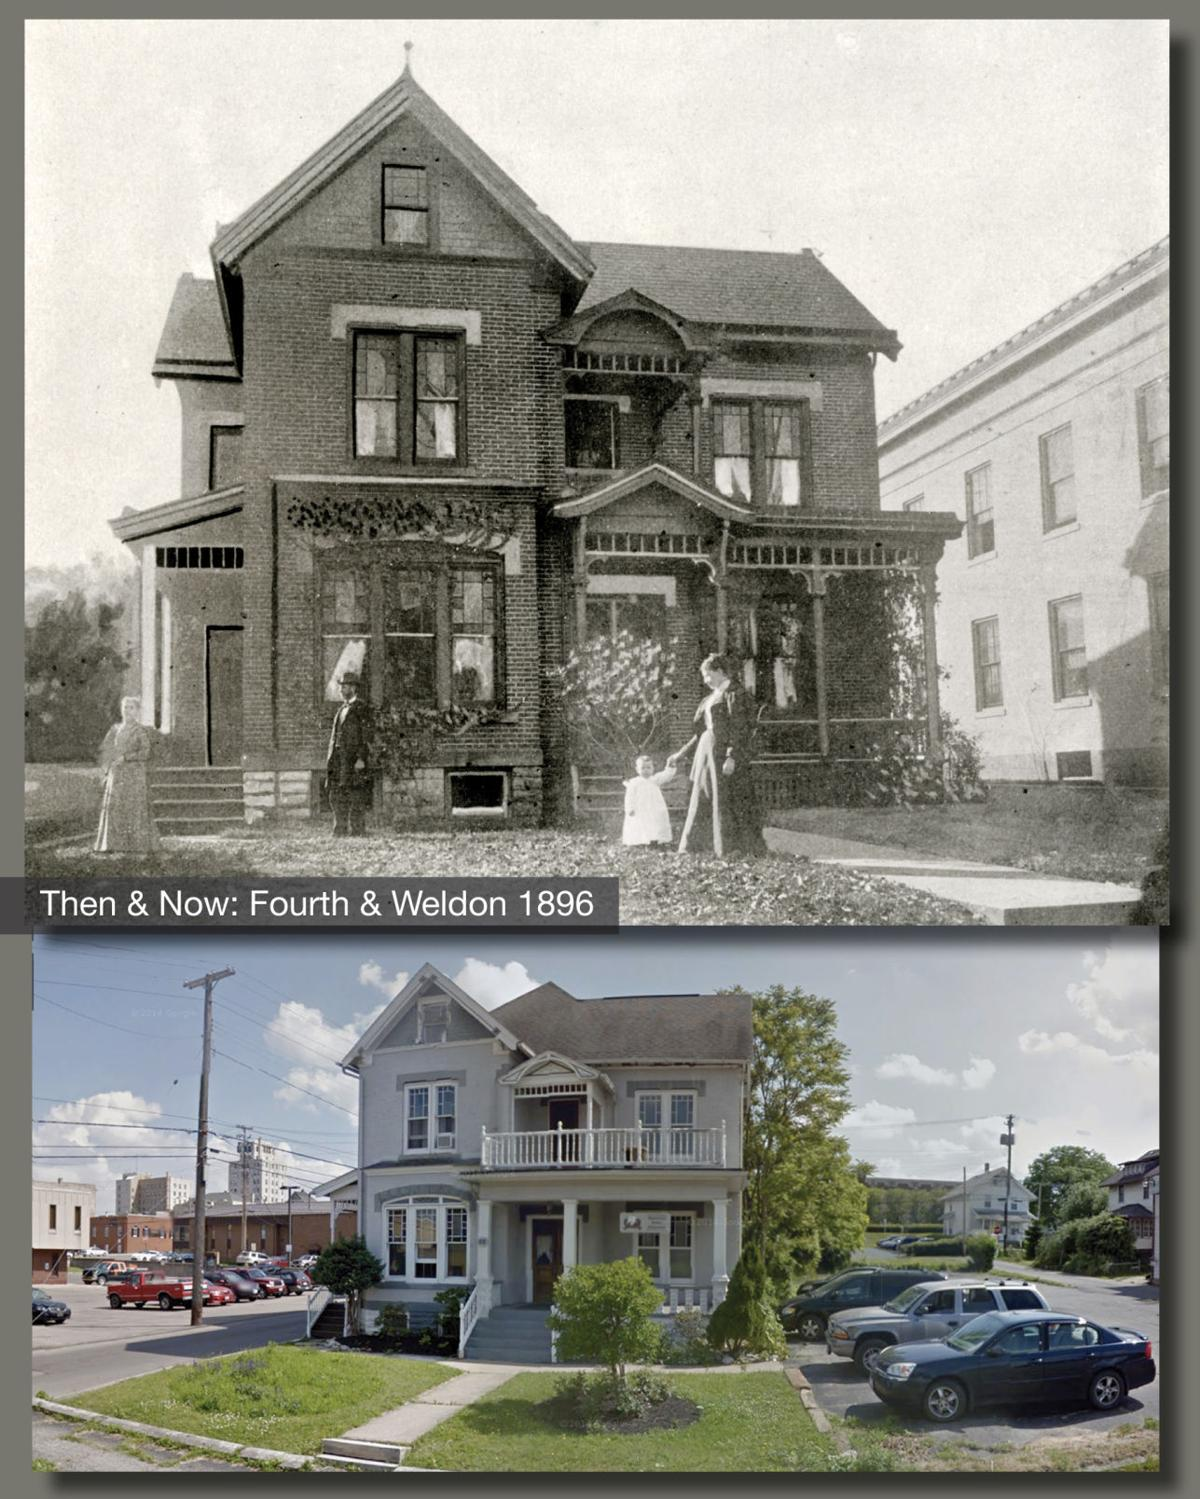 Then & Now: Fourth and Weldon 1896